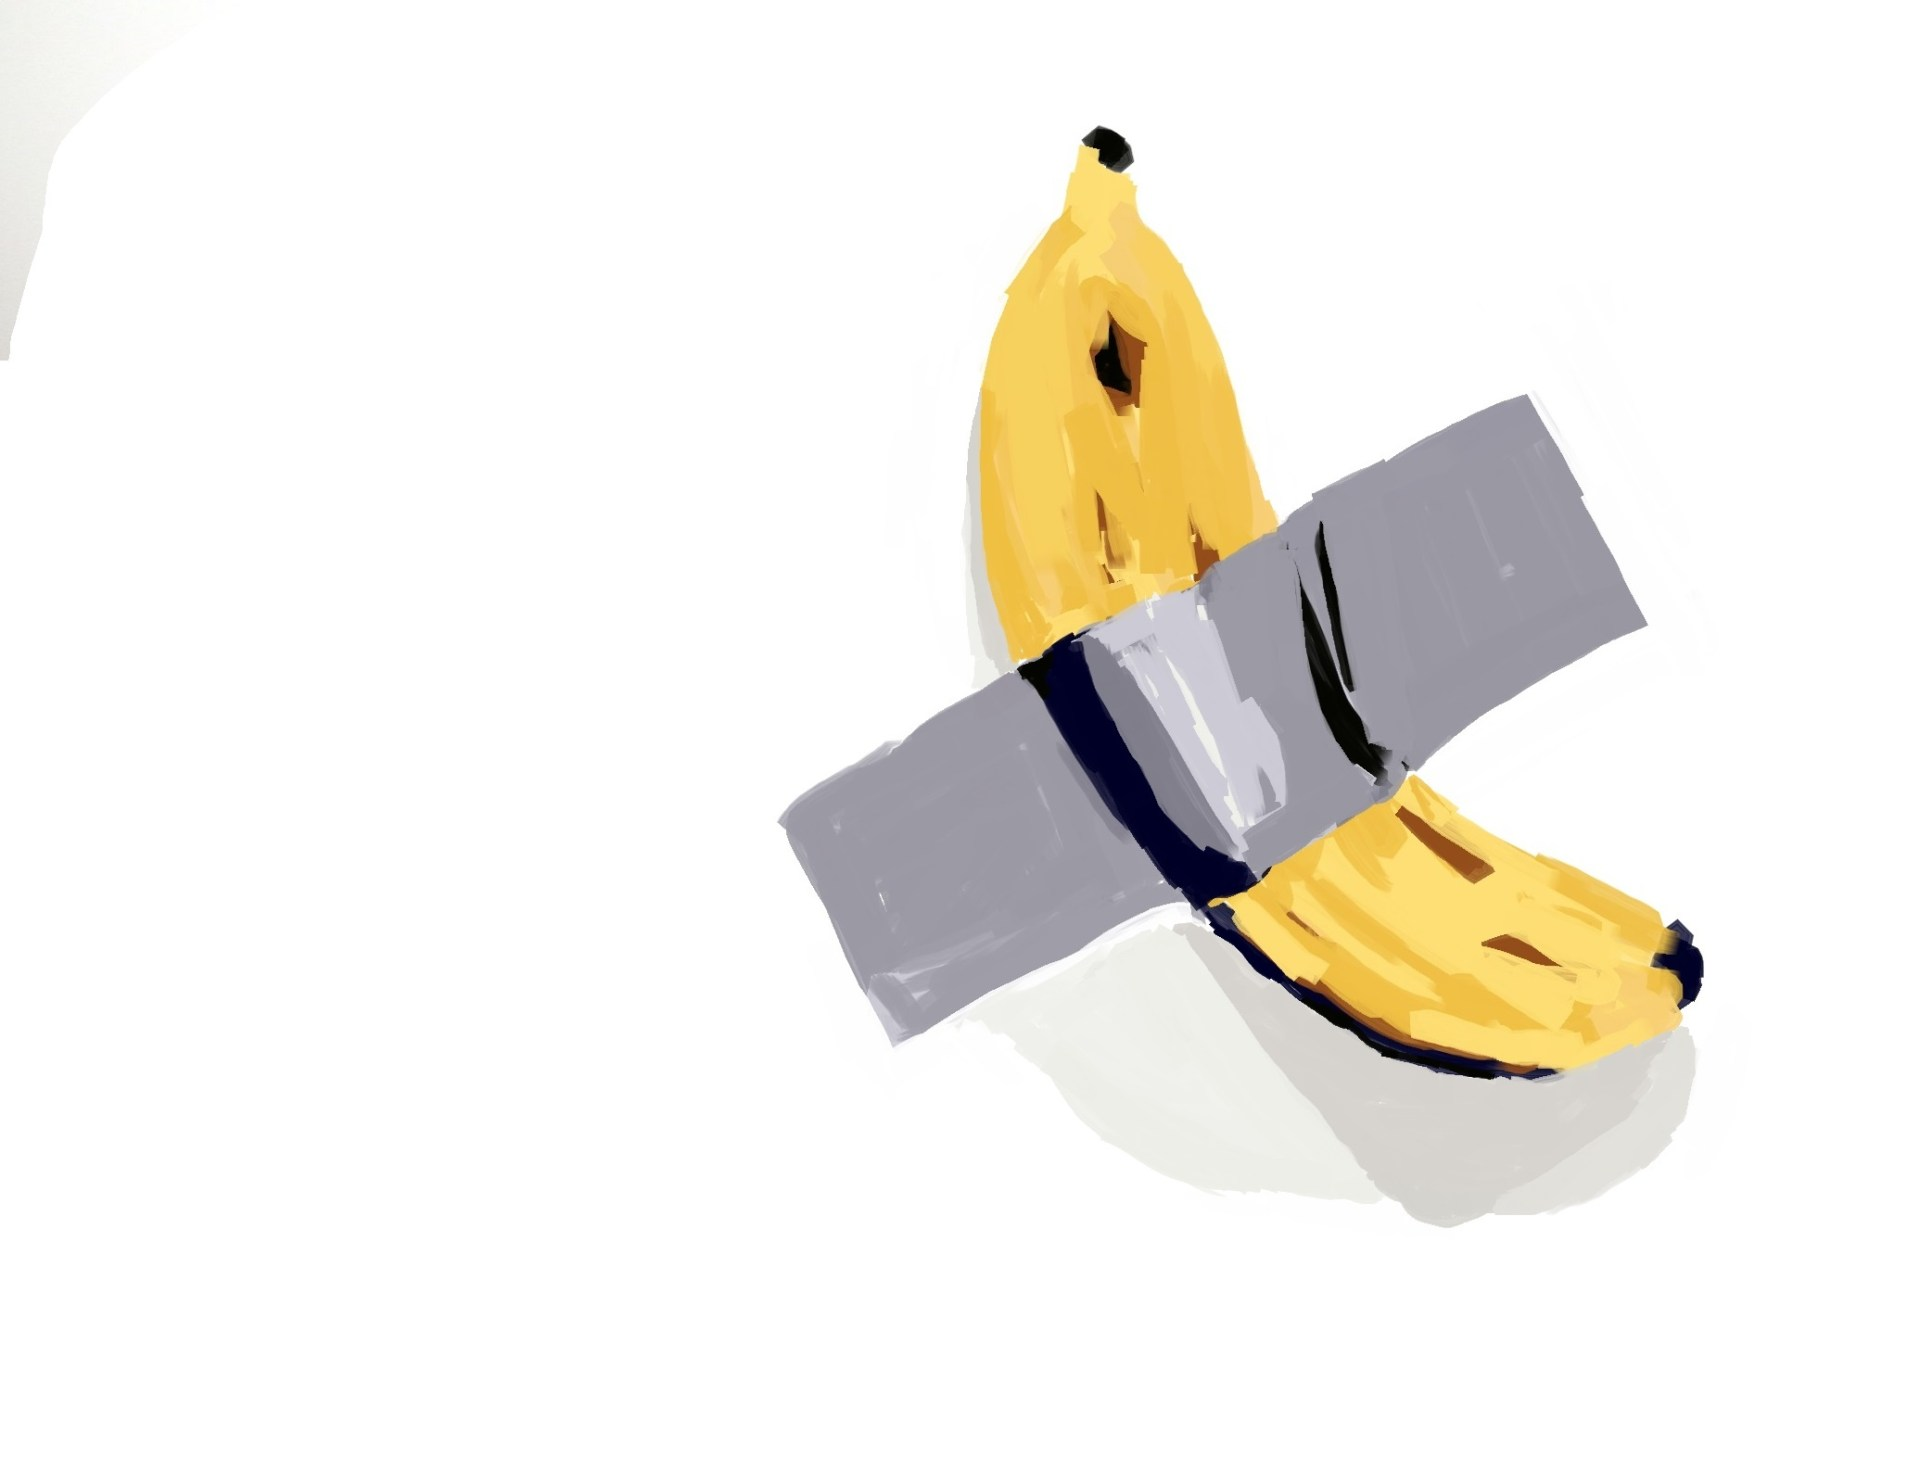 banana tribut by persuadeo